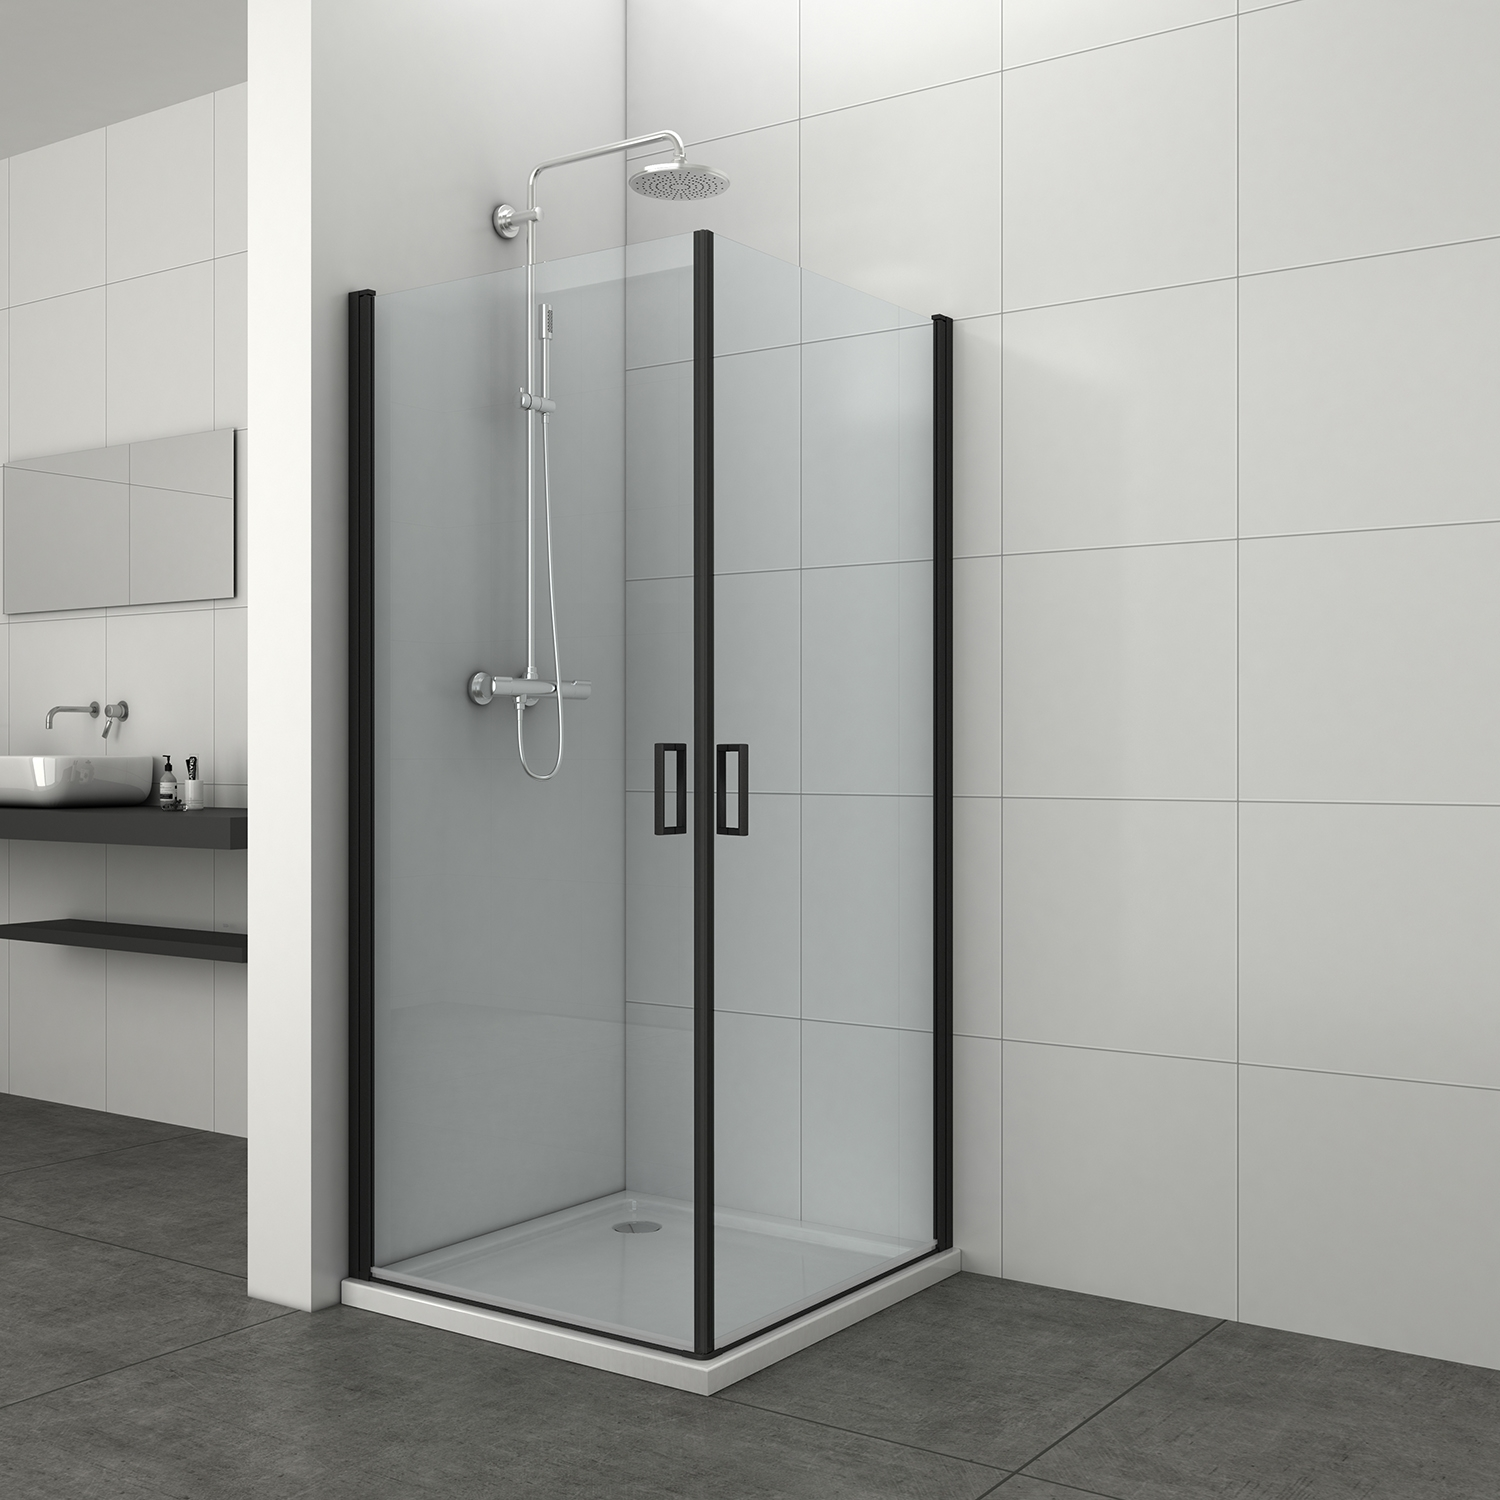 Complete Douchecabines Punt Nl.Badkamer Accessoires Saniclear Modern Douchecabine 80x90 Met 90cm